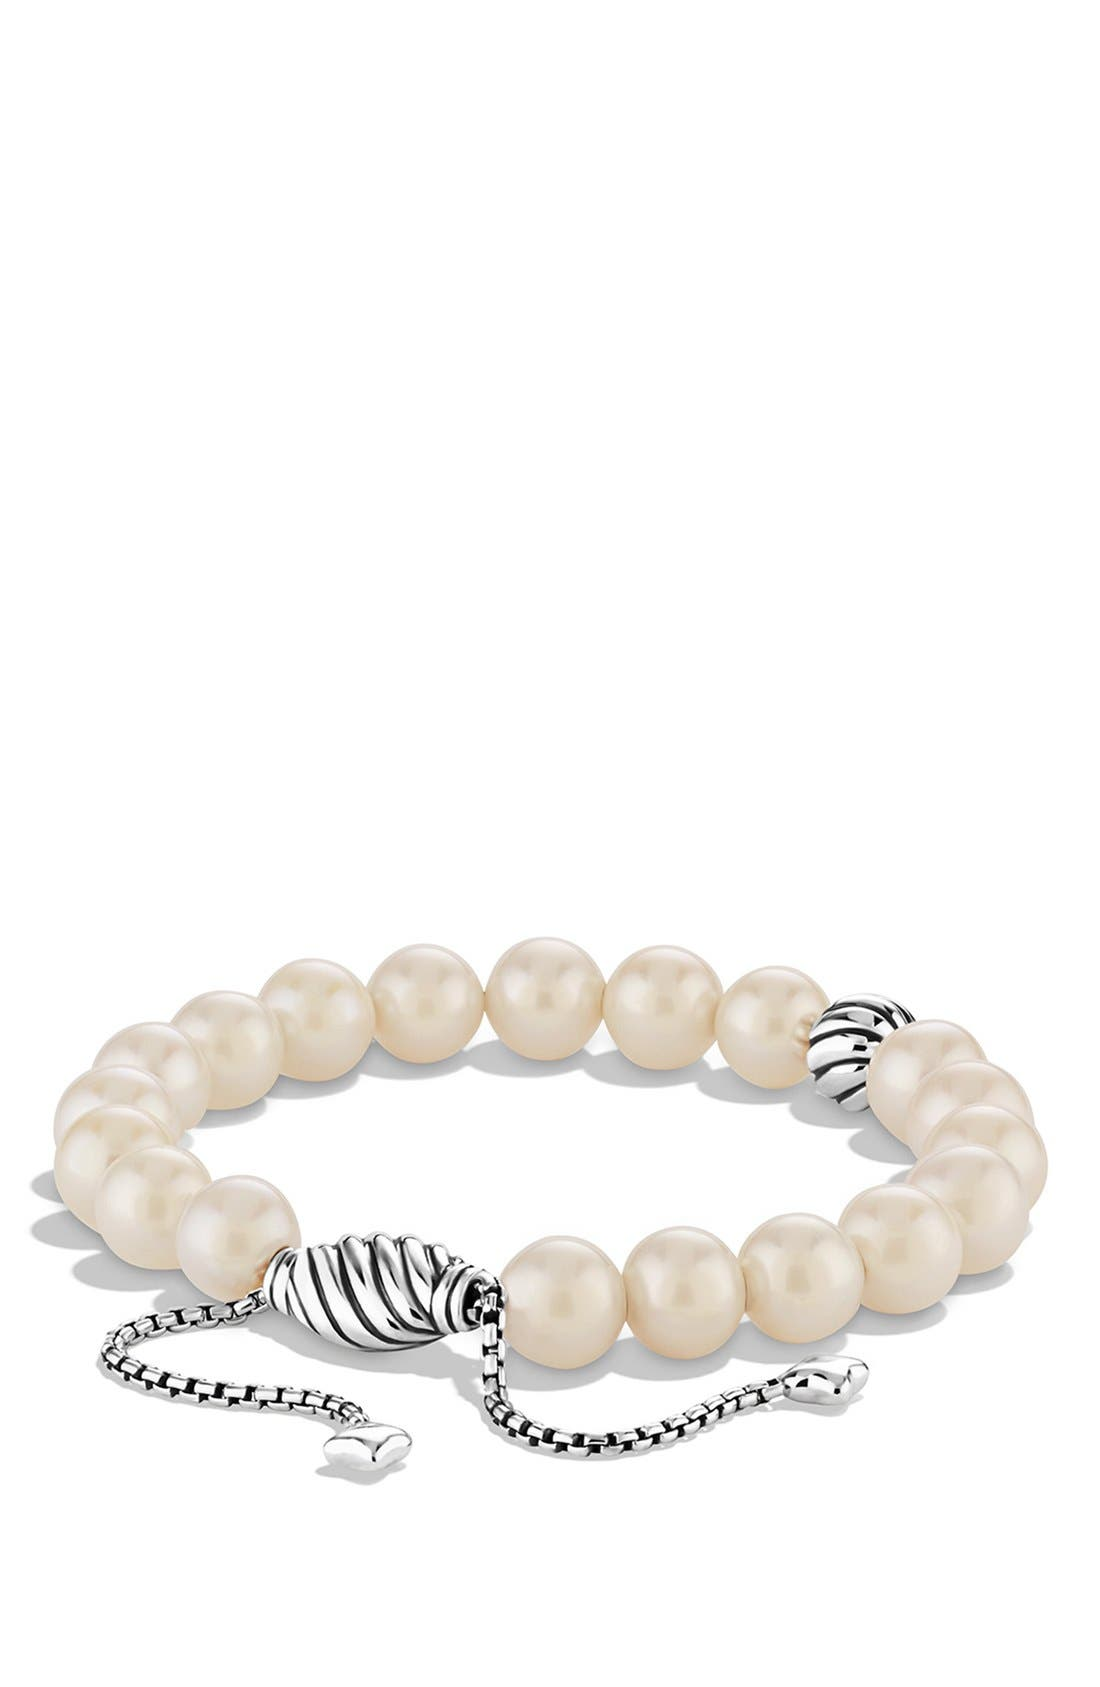 'Spiritual Beads' Bracelet with Pearls,                         Main,                         color, PEARL